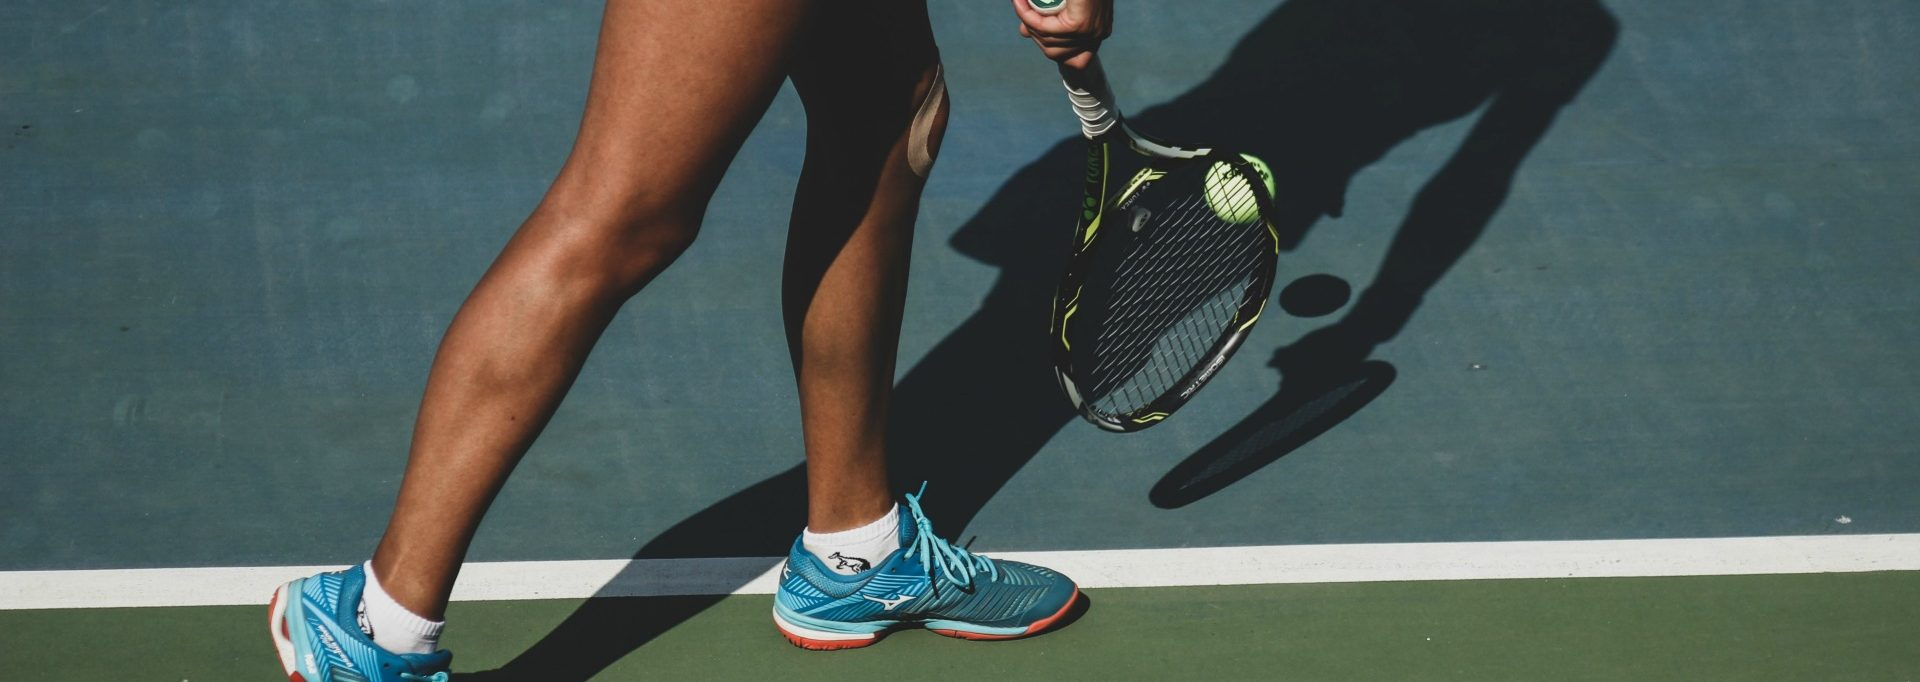 Tips For Staying Healthy Playing Tennis